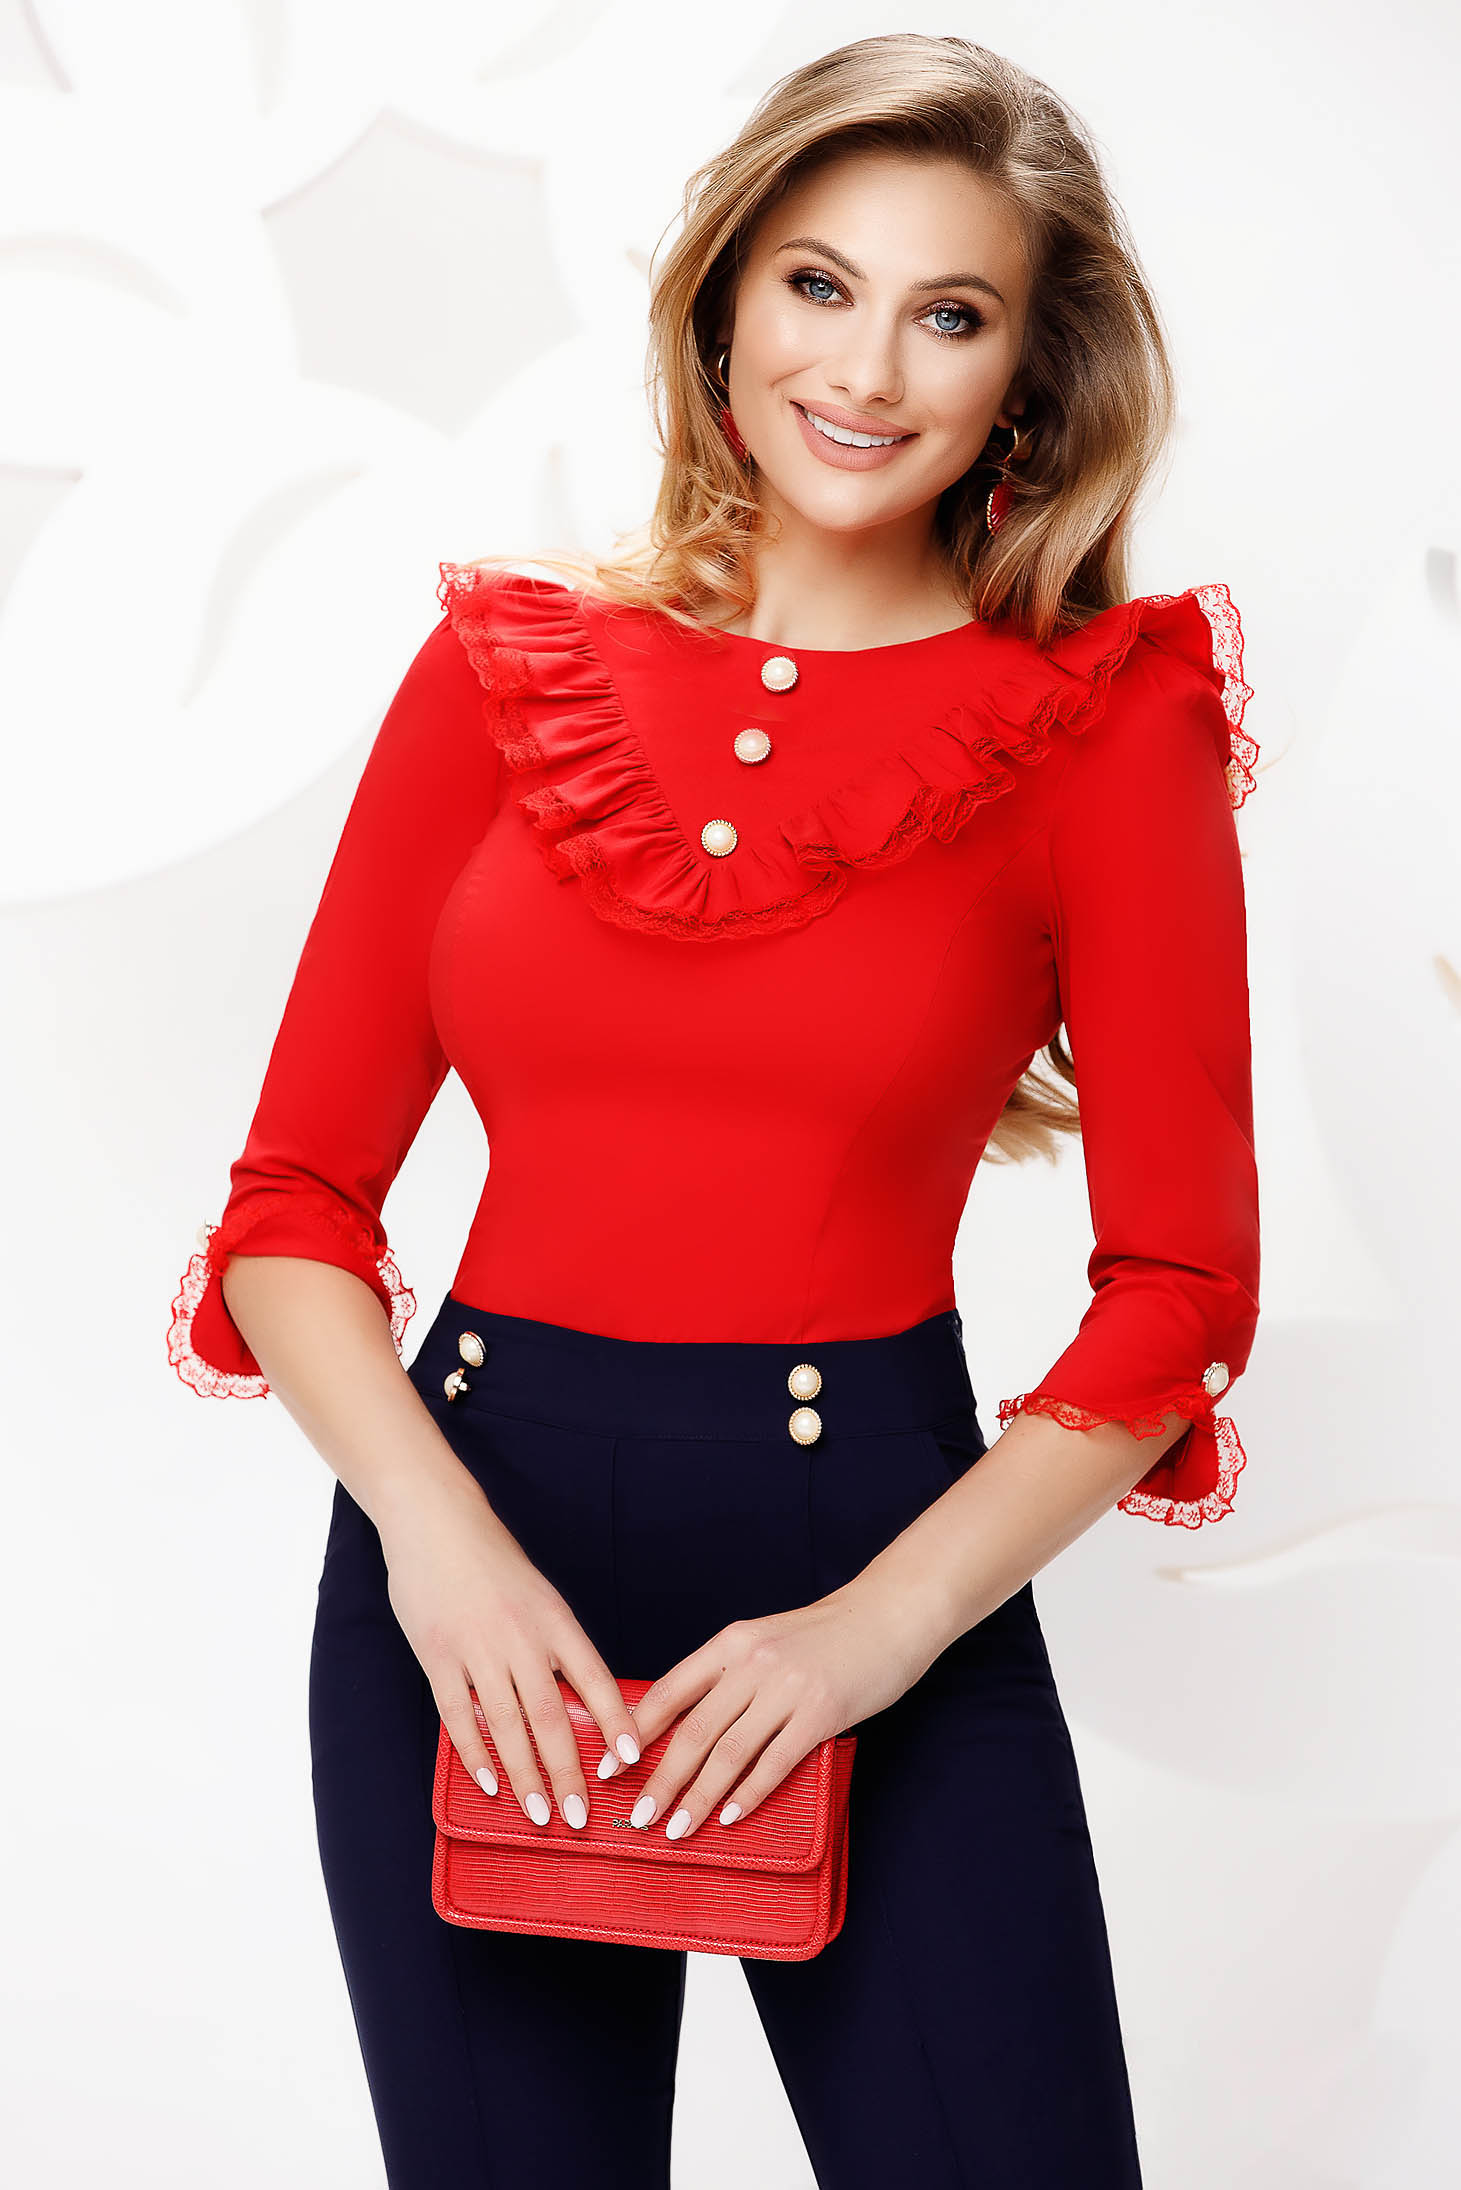 Women`s shirt office red tented ruffled collar with lace details